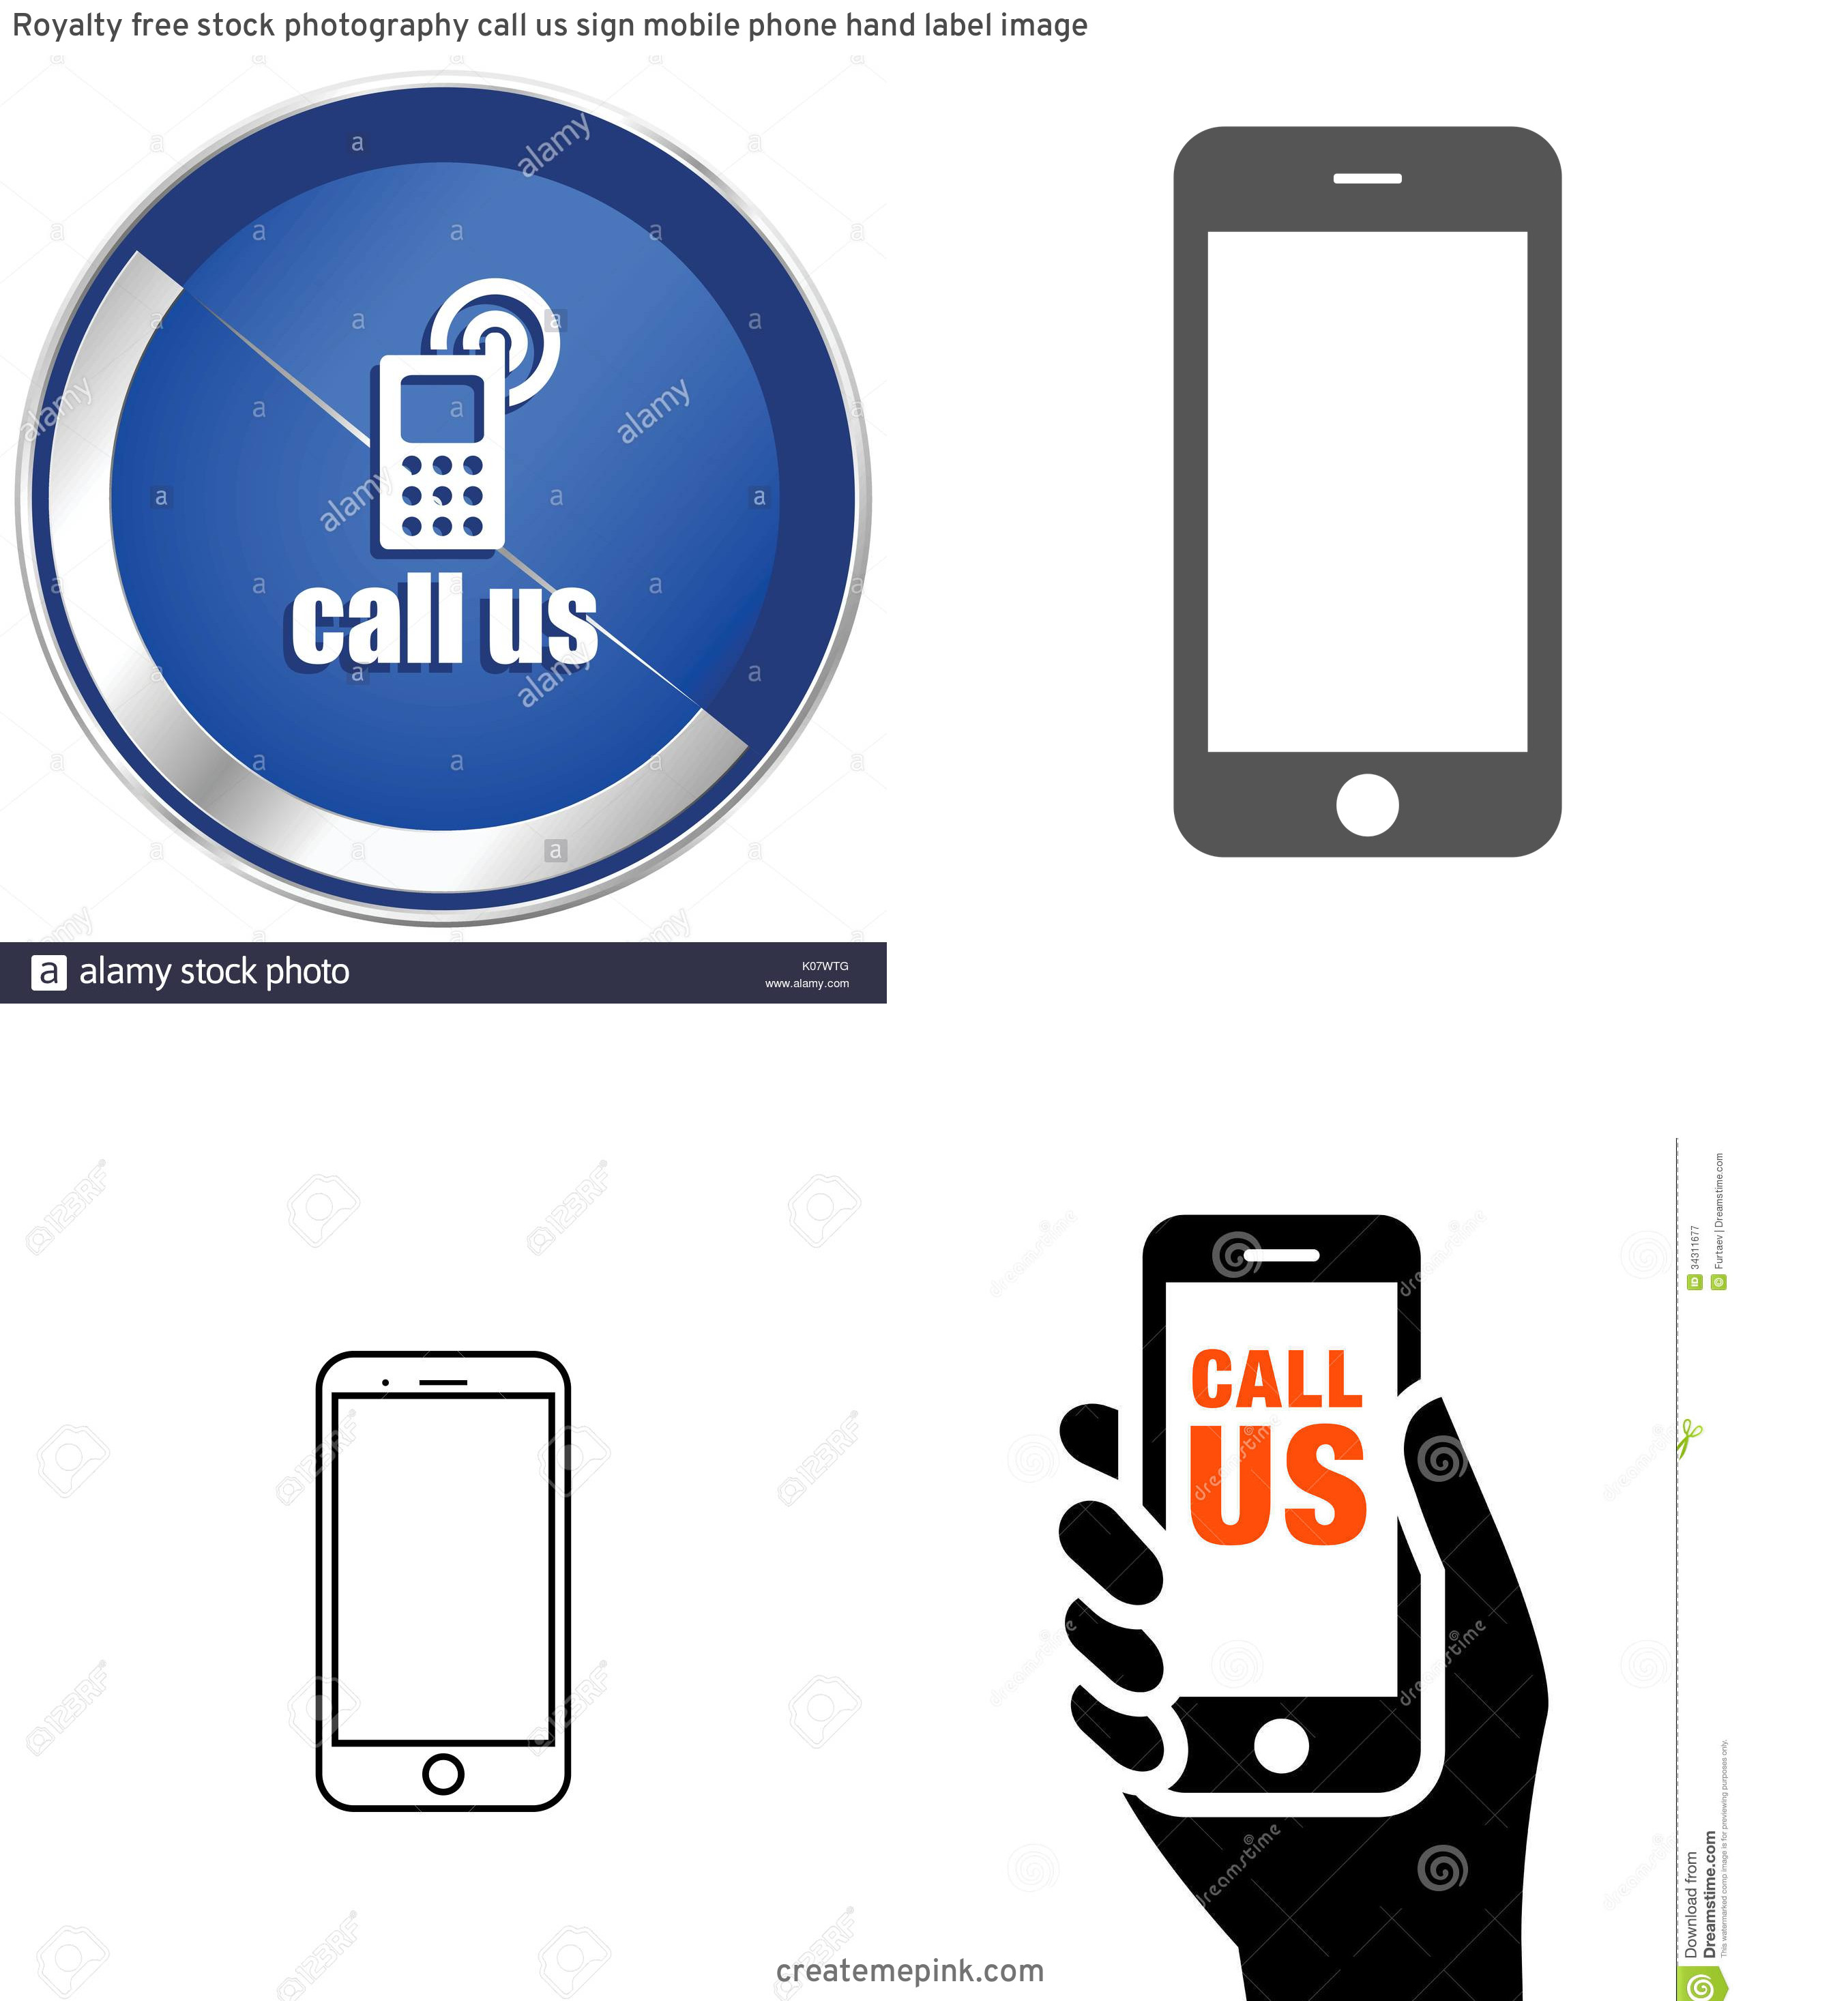 U.S. Cellular Phone Vector: Royalty Free Stock Photography Call Us Sign Mobile Phone Hand Label Image